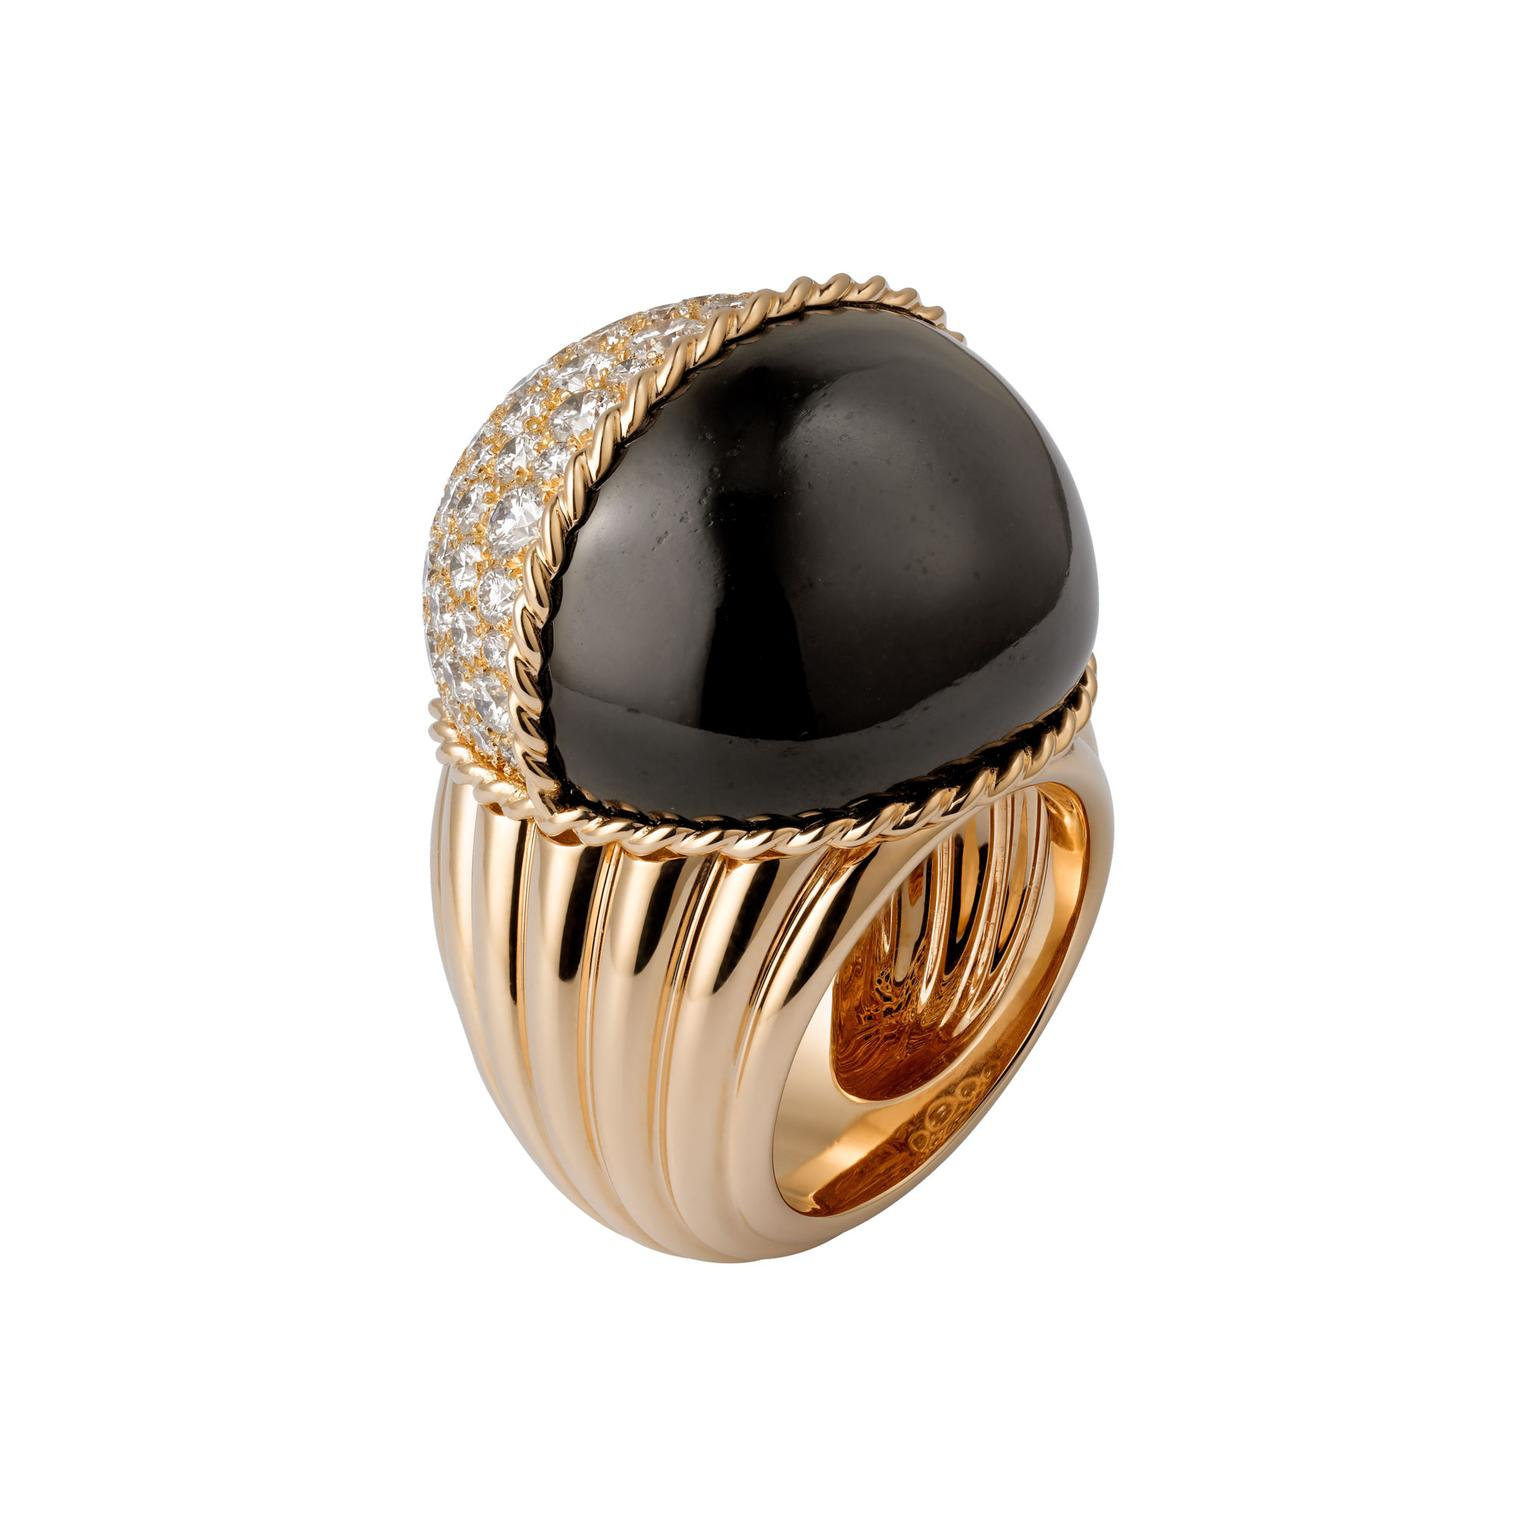 Cartier Paris Nouvelle Vague black jade ring